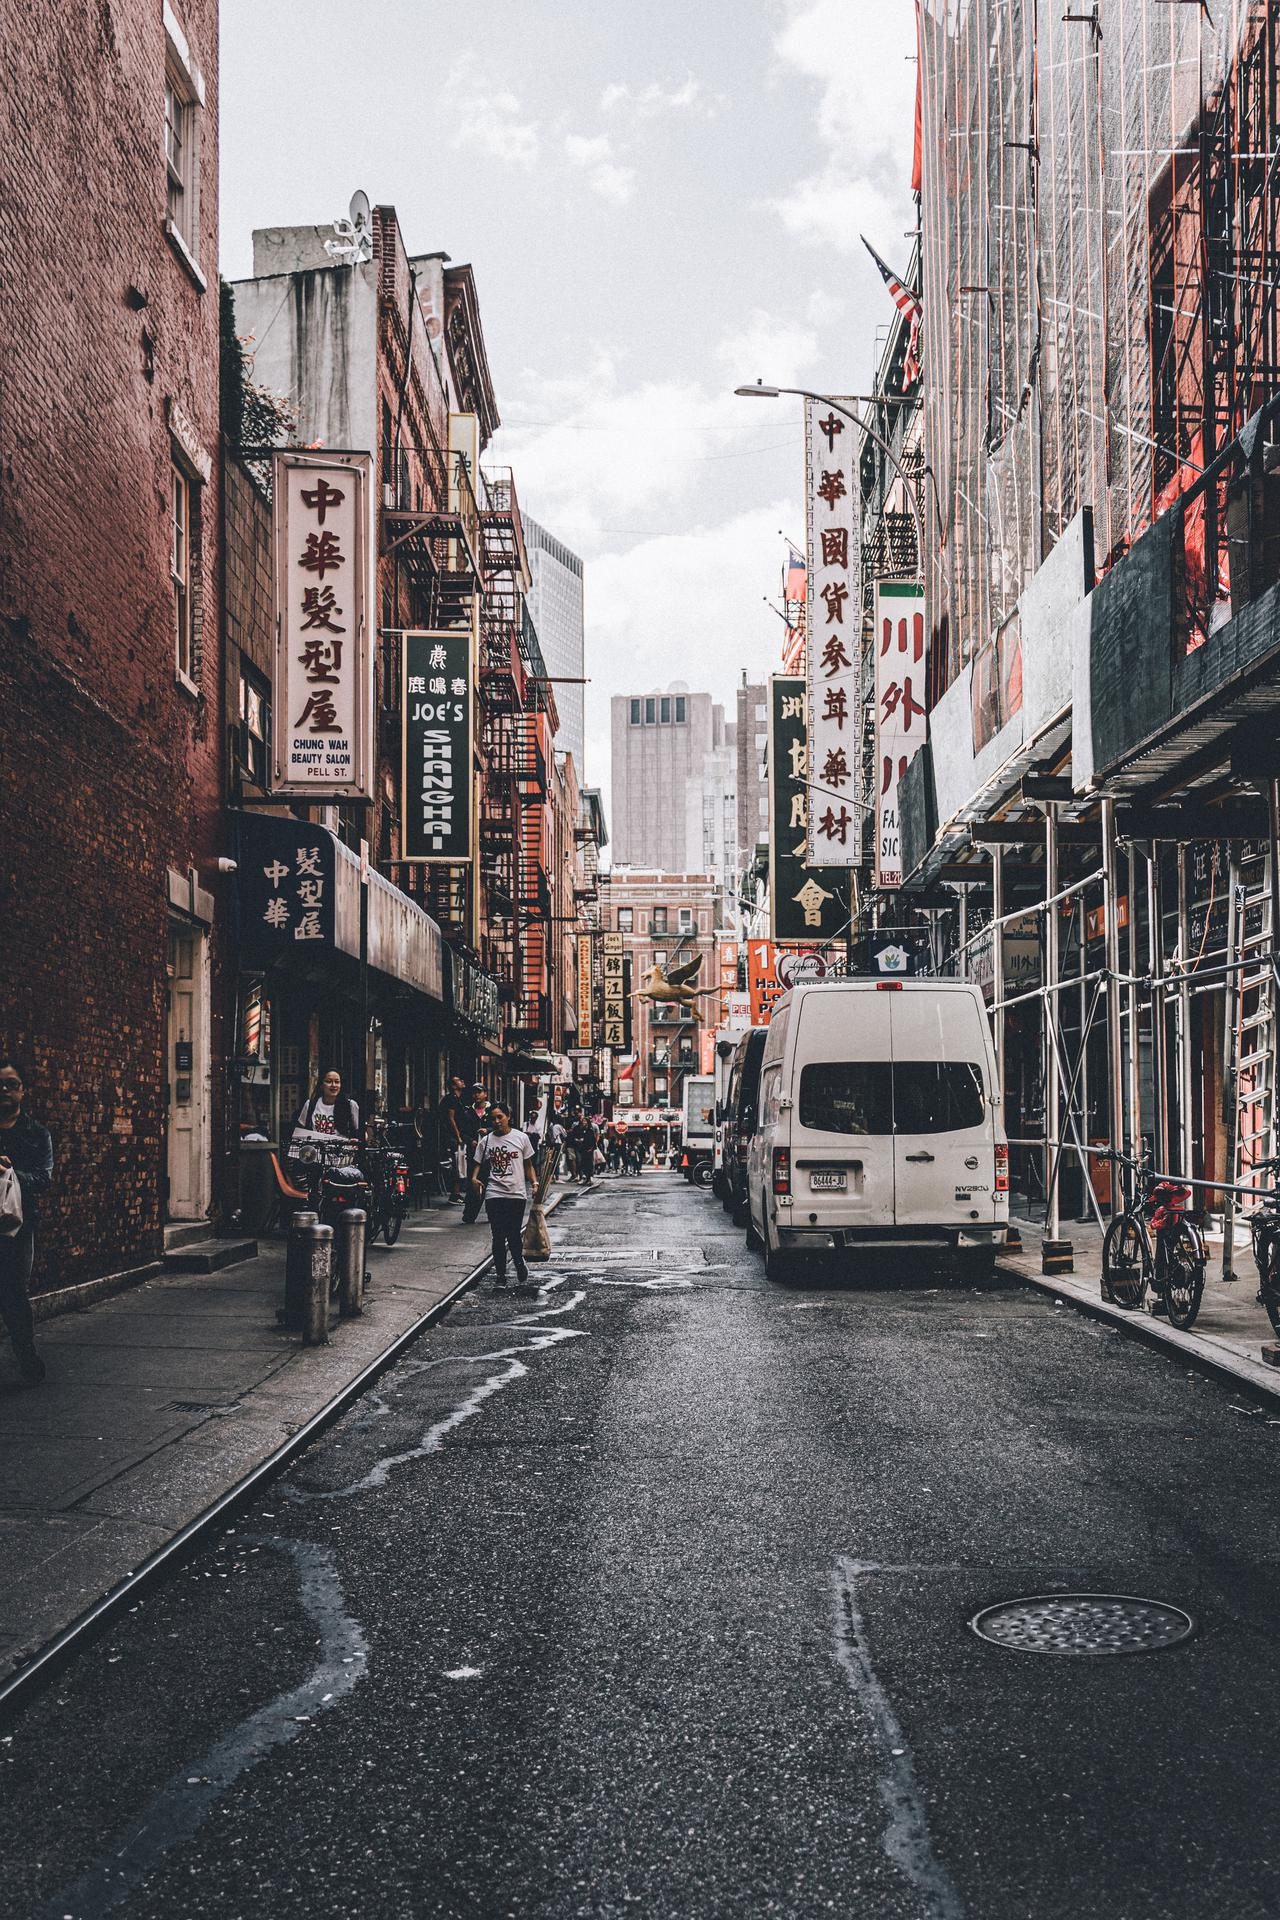 Take a walking Chinatown tour to get to know the neighborhood in a totally new way.